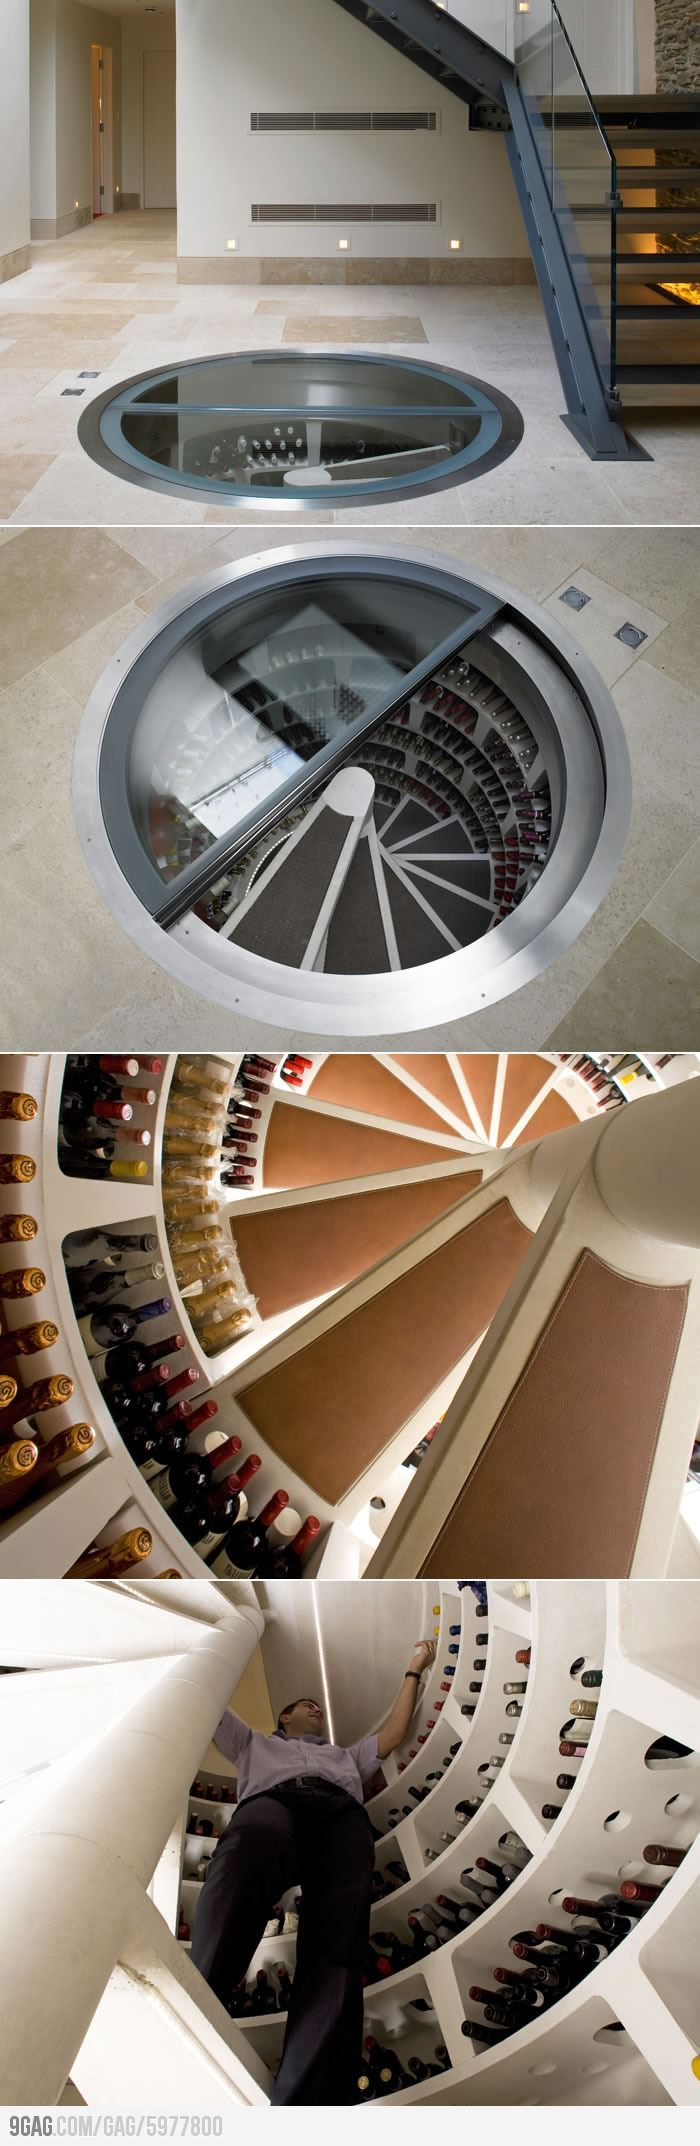 Spiral Wine Cellar so awesome